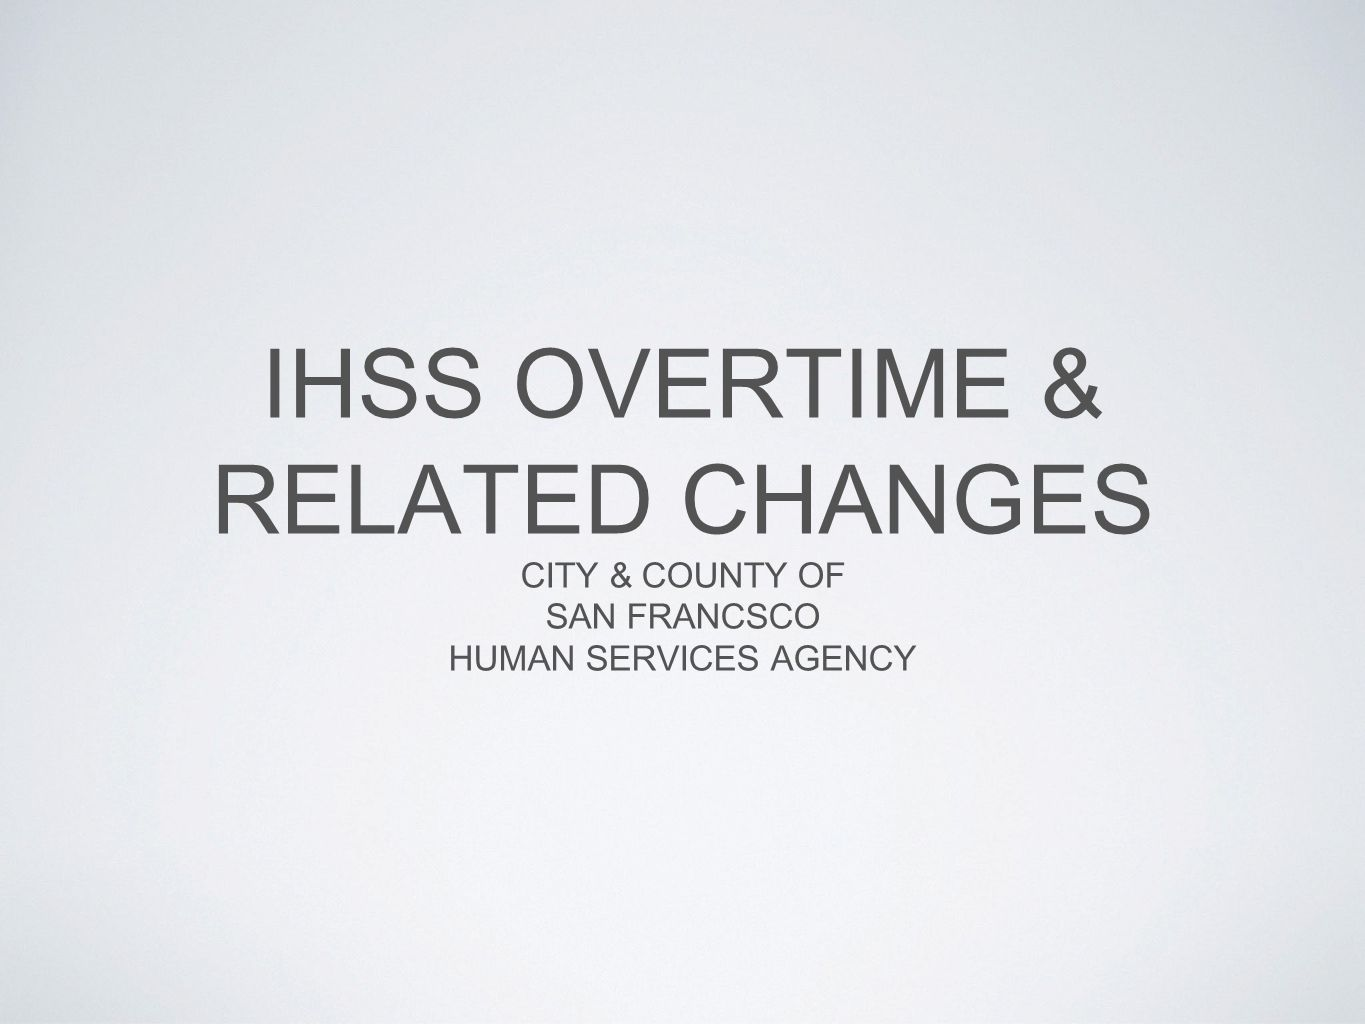 IHSS OVERTIME & RELATED CHANGES CITY & COUNTY OF SAN FRANCSCO HUMAN SERVICES AGENCY